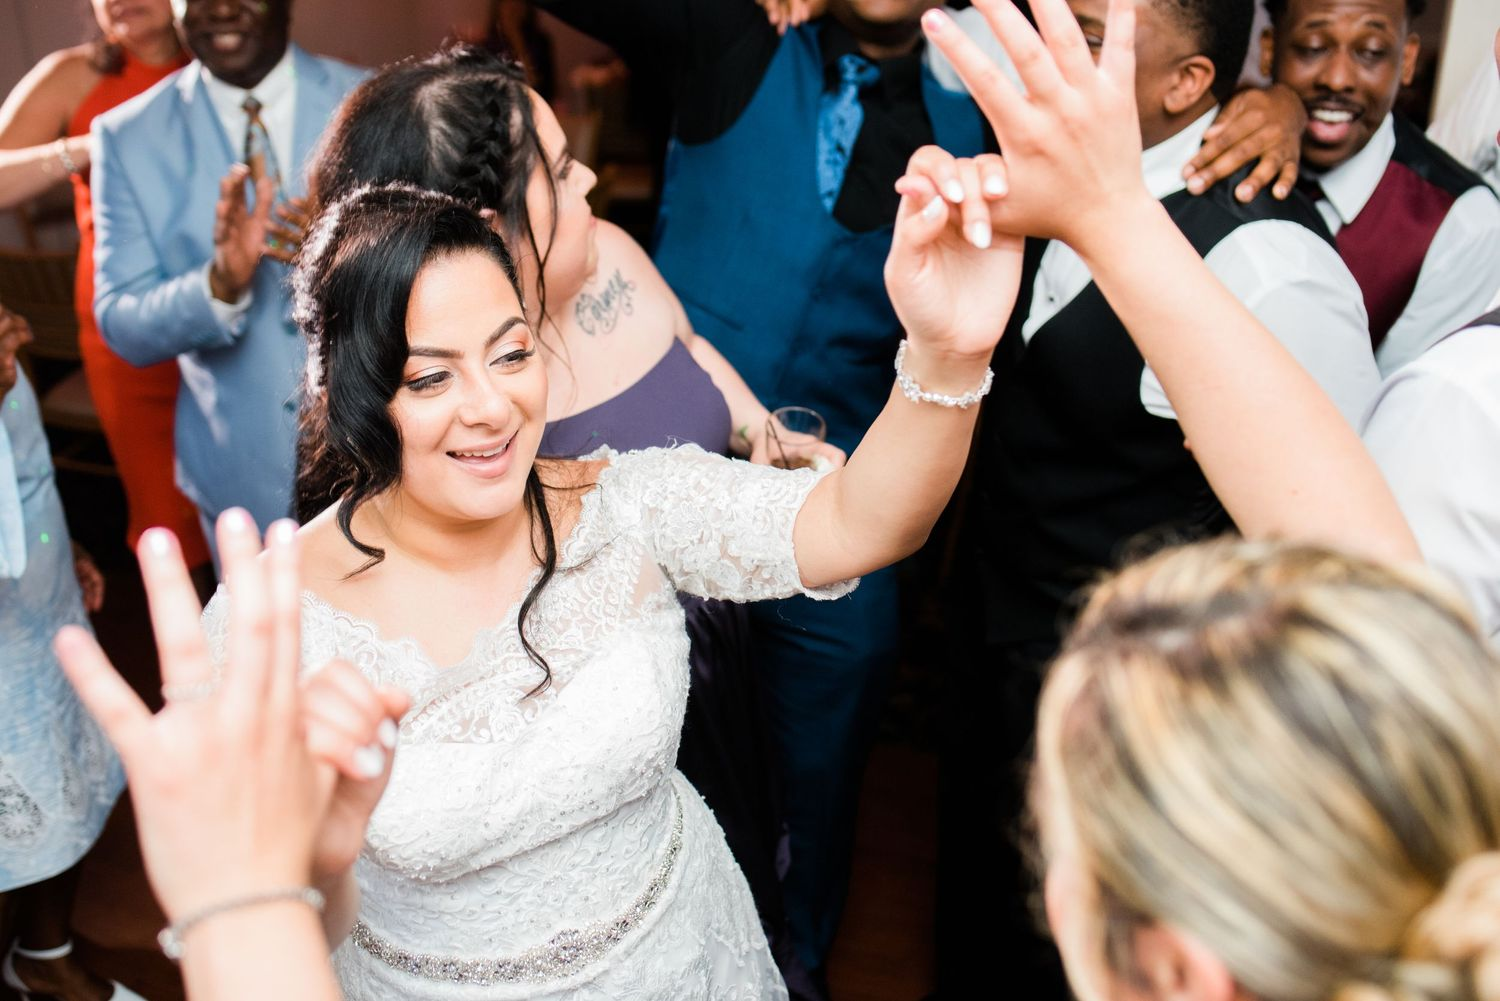 bride dancing with hands up in the air in the dance floor